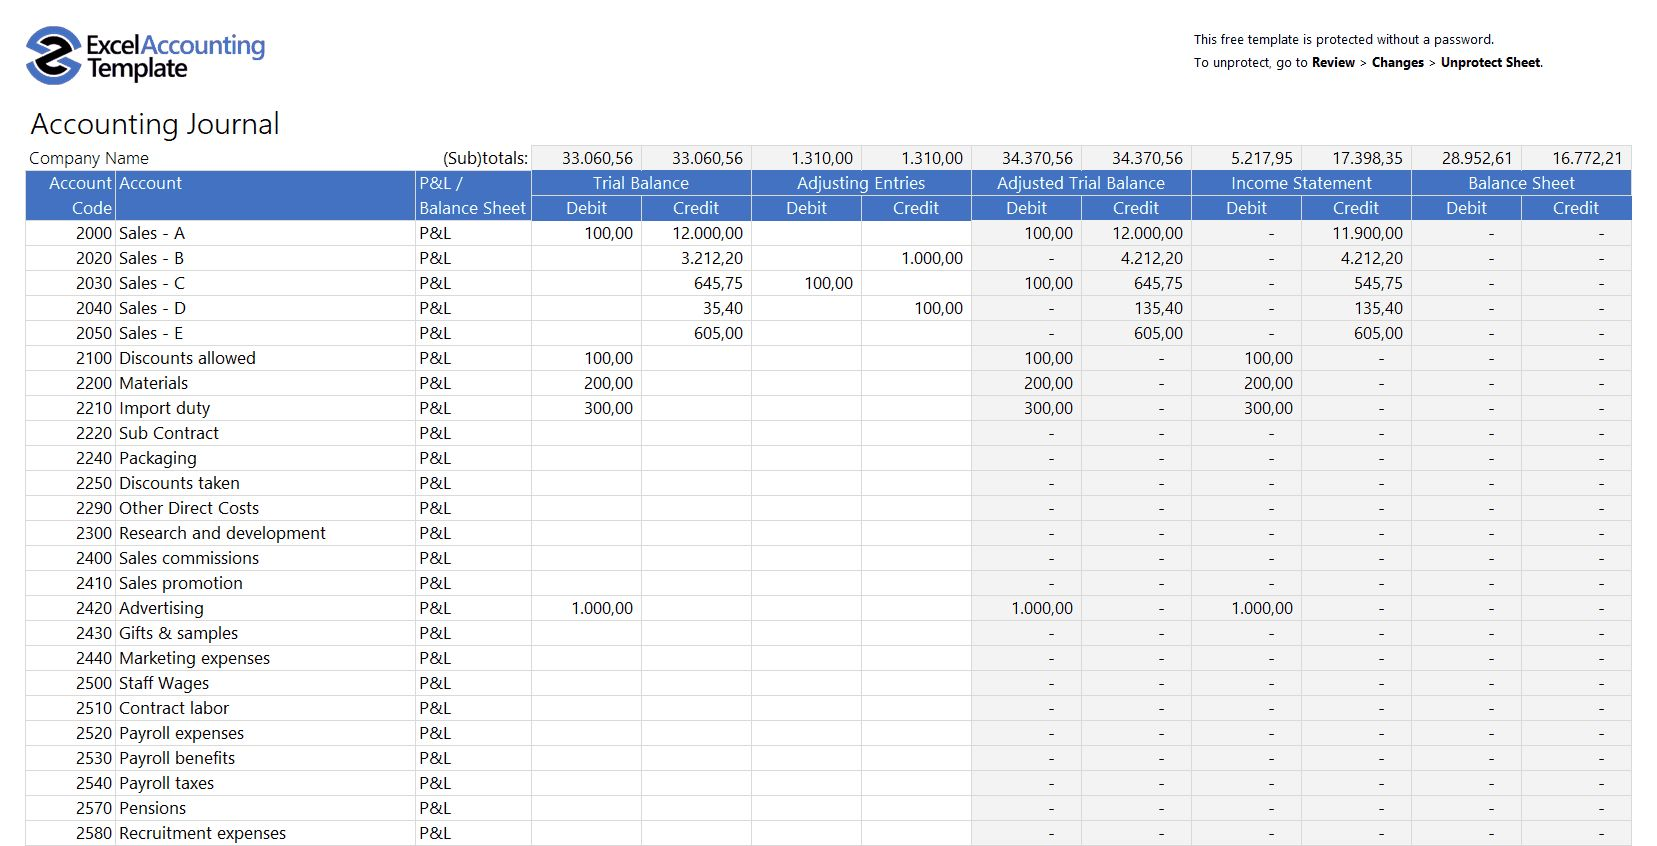 Free Accounting Templates In Excel Download For Your Business Within Financial Reporti Spreadsheet Template Balance Sheet Template Small Business Bookkeeping